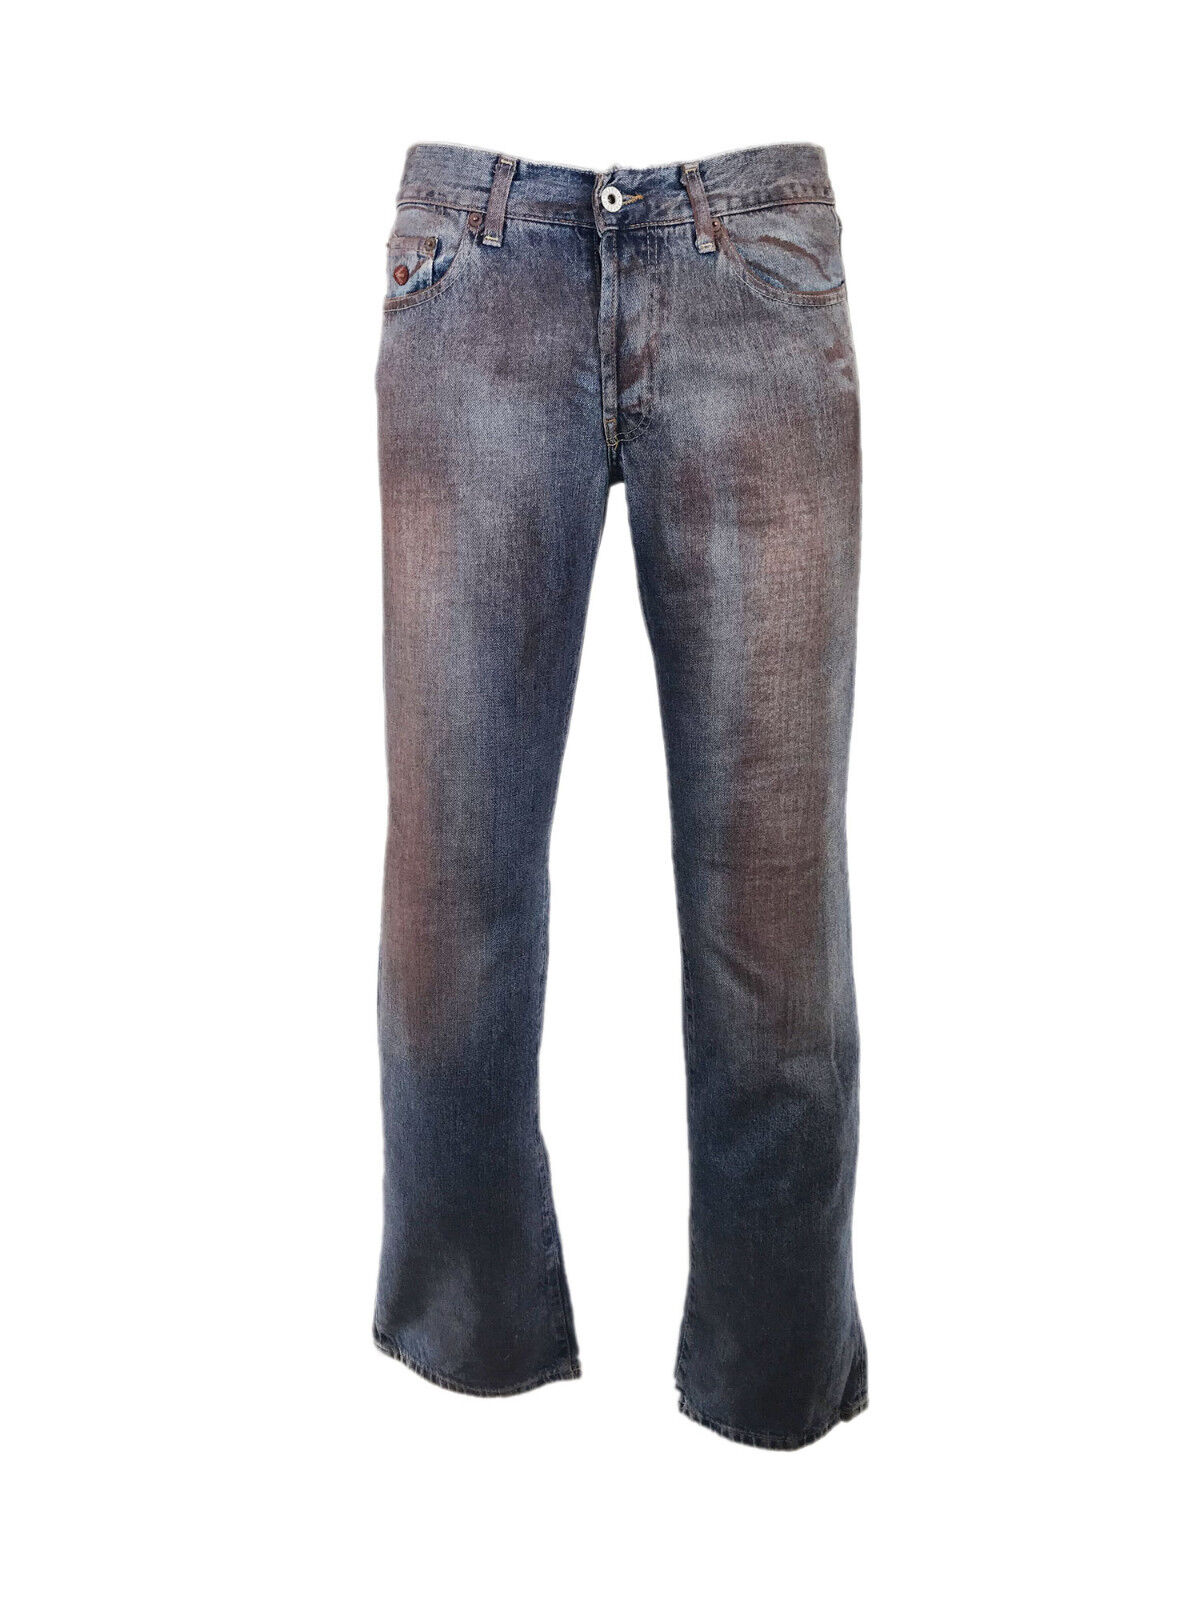 Energie Straight Morris Vintage Flares Jeans with Beautiful Red-ish Wash Dye